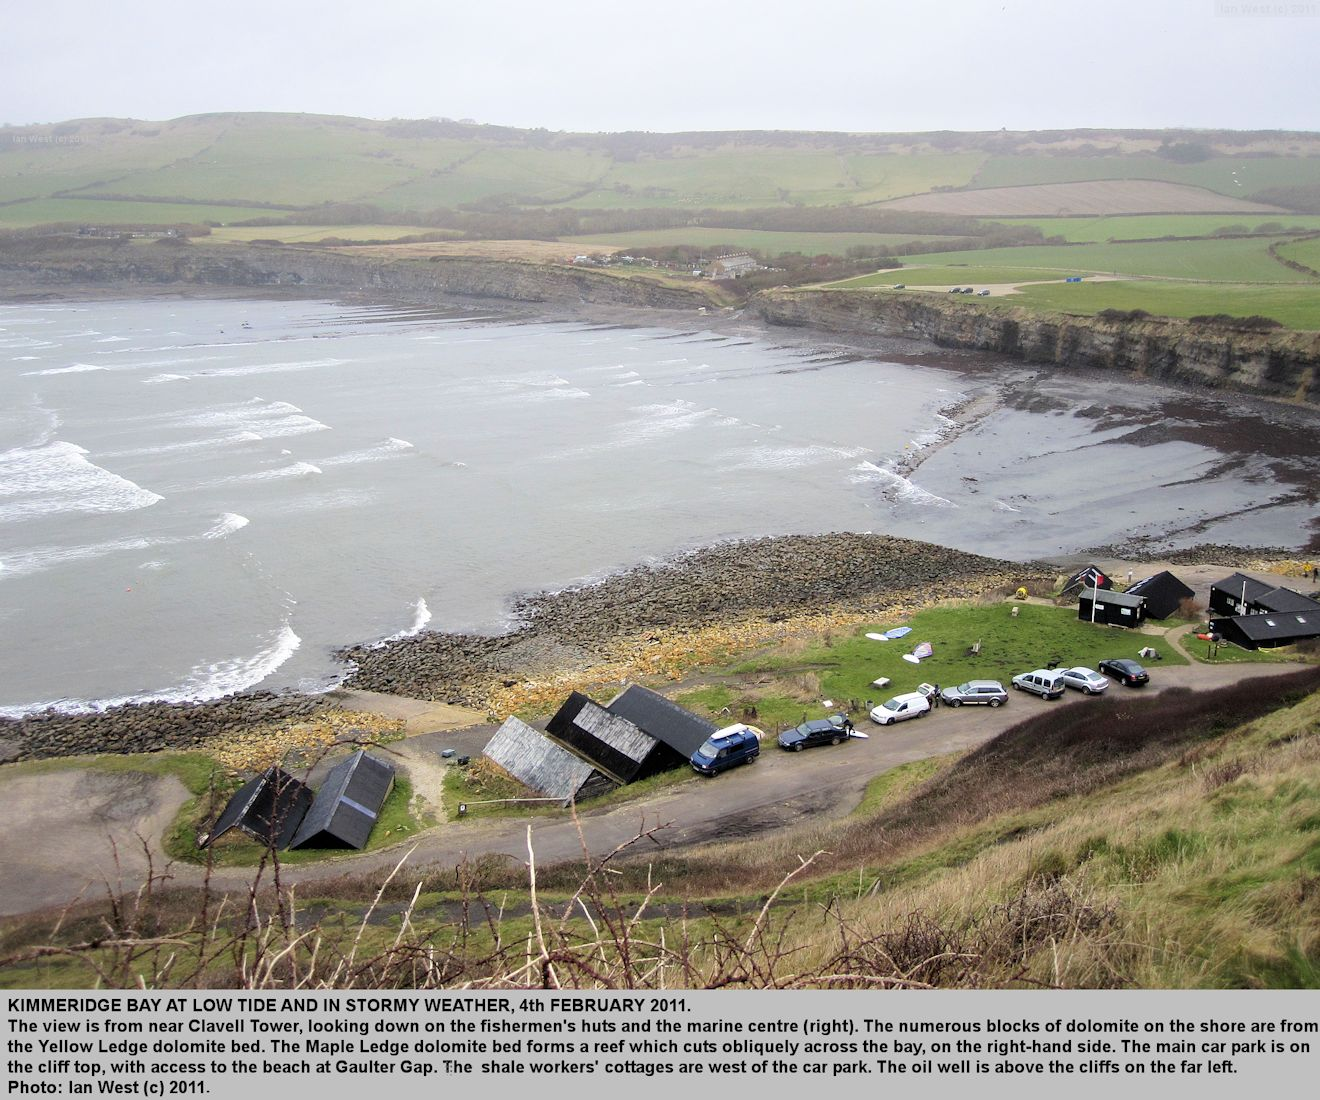 Kimmeridge Bay, Dorset, seen from the hill with Clavell Tower, in stormy weather, 4th February 2011